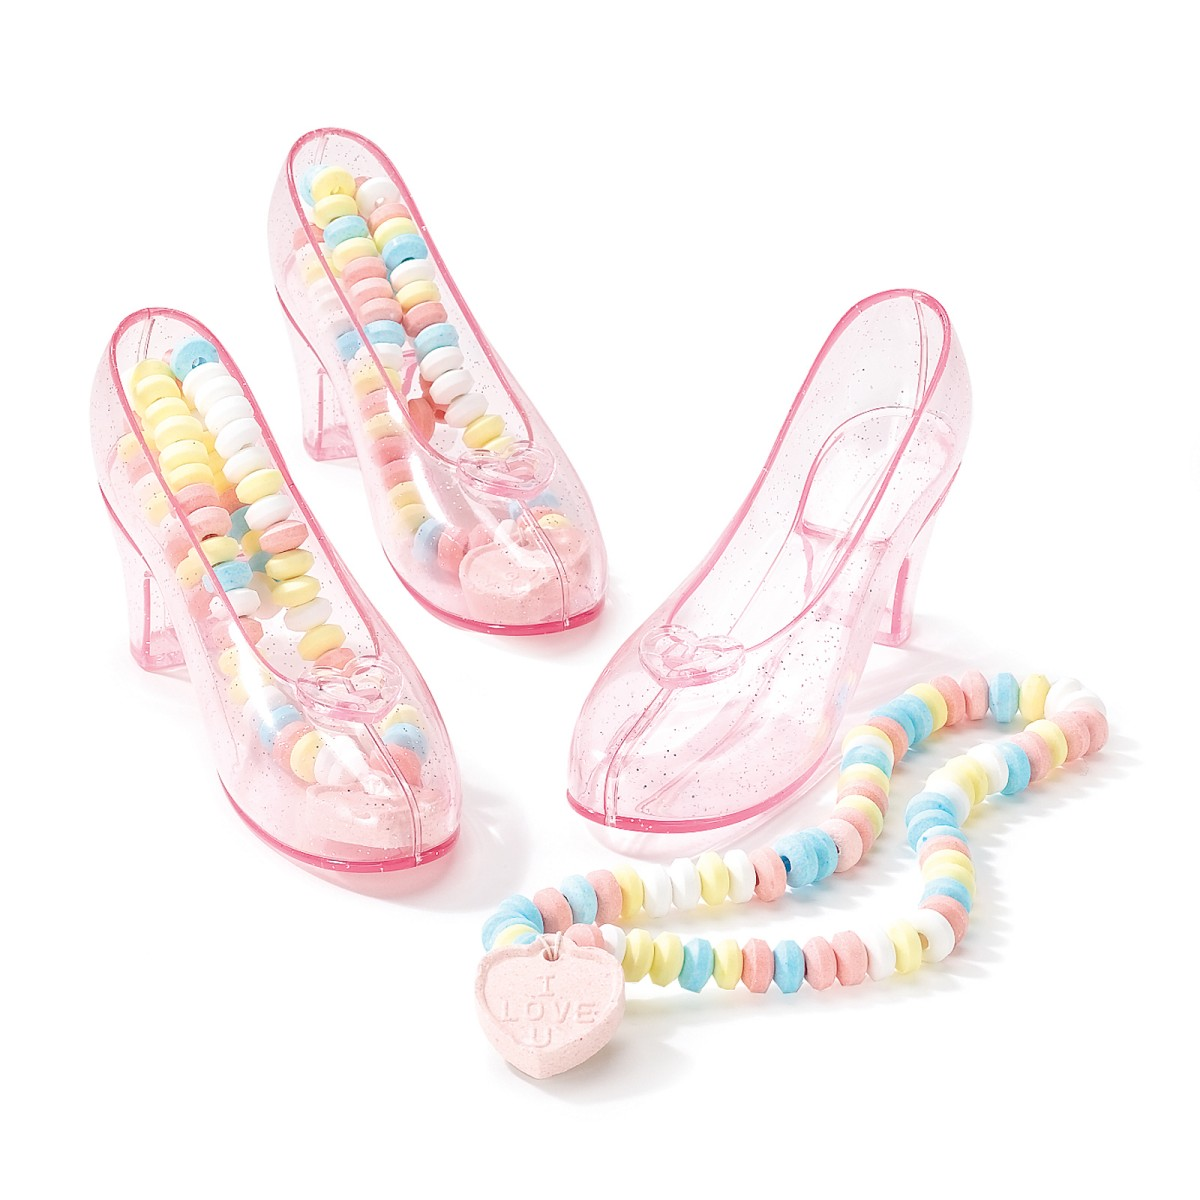 Candy-Filled Crystal Shoes